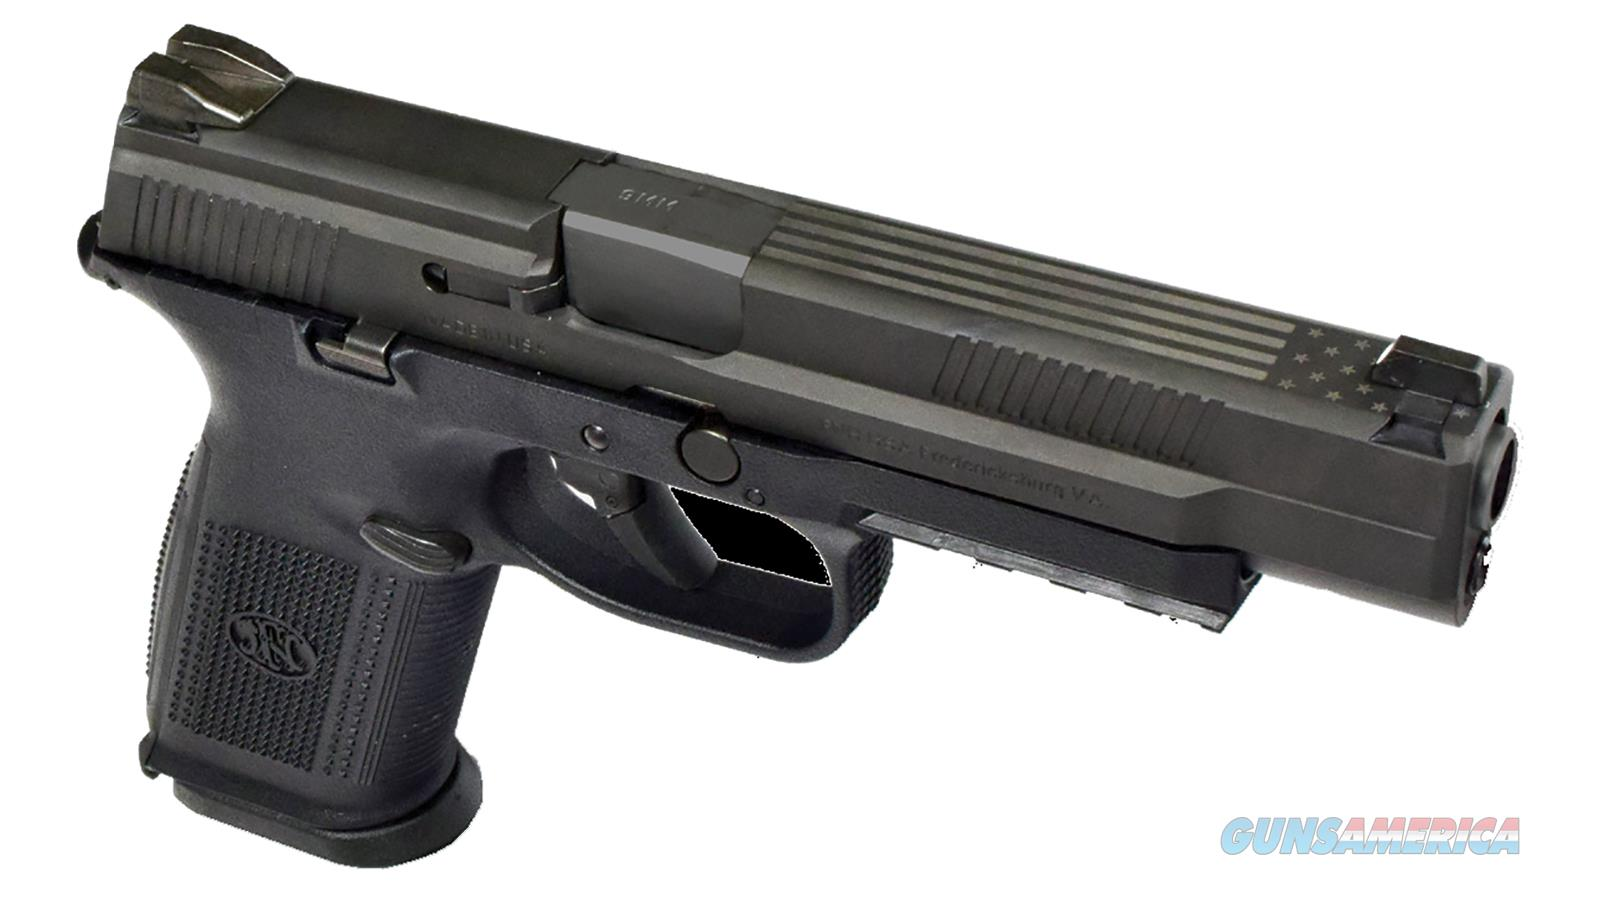 "FN MANUFACTURING FNS 9MM 5"" 17RD 66725-CUST-002  Guns > Pistols > FNH - Fabrique Nationale (FN) Pistols > FNS"